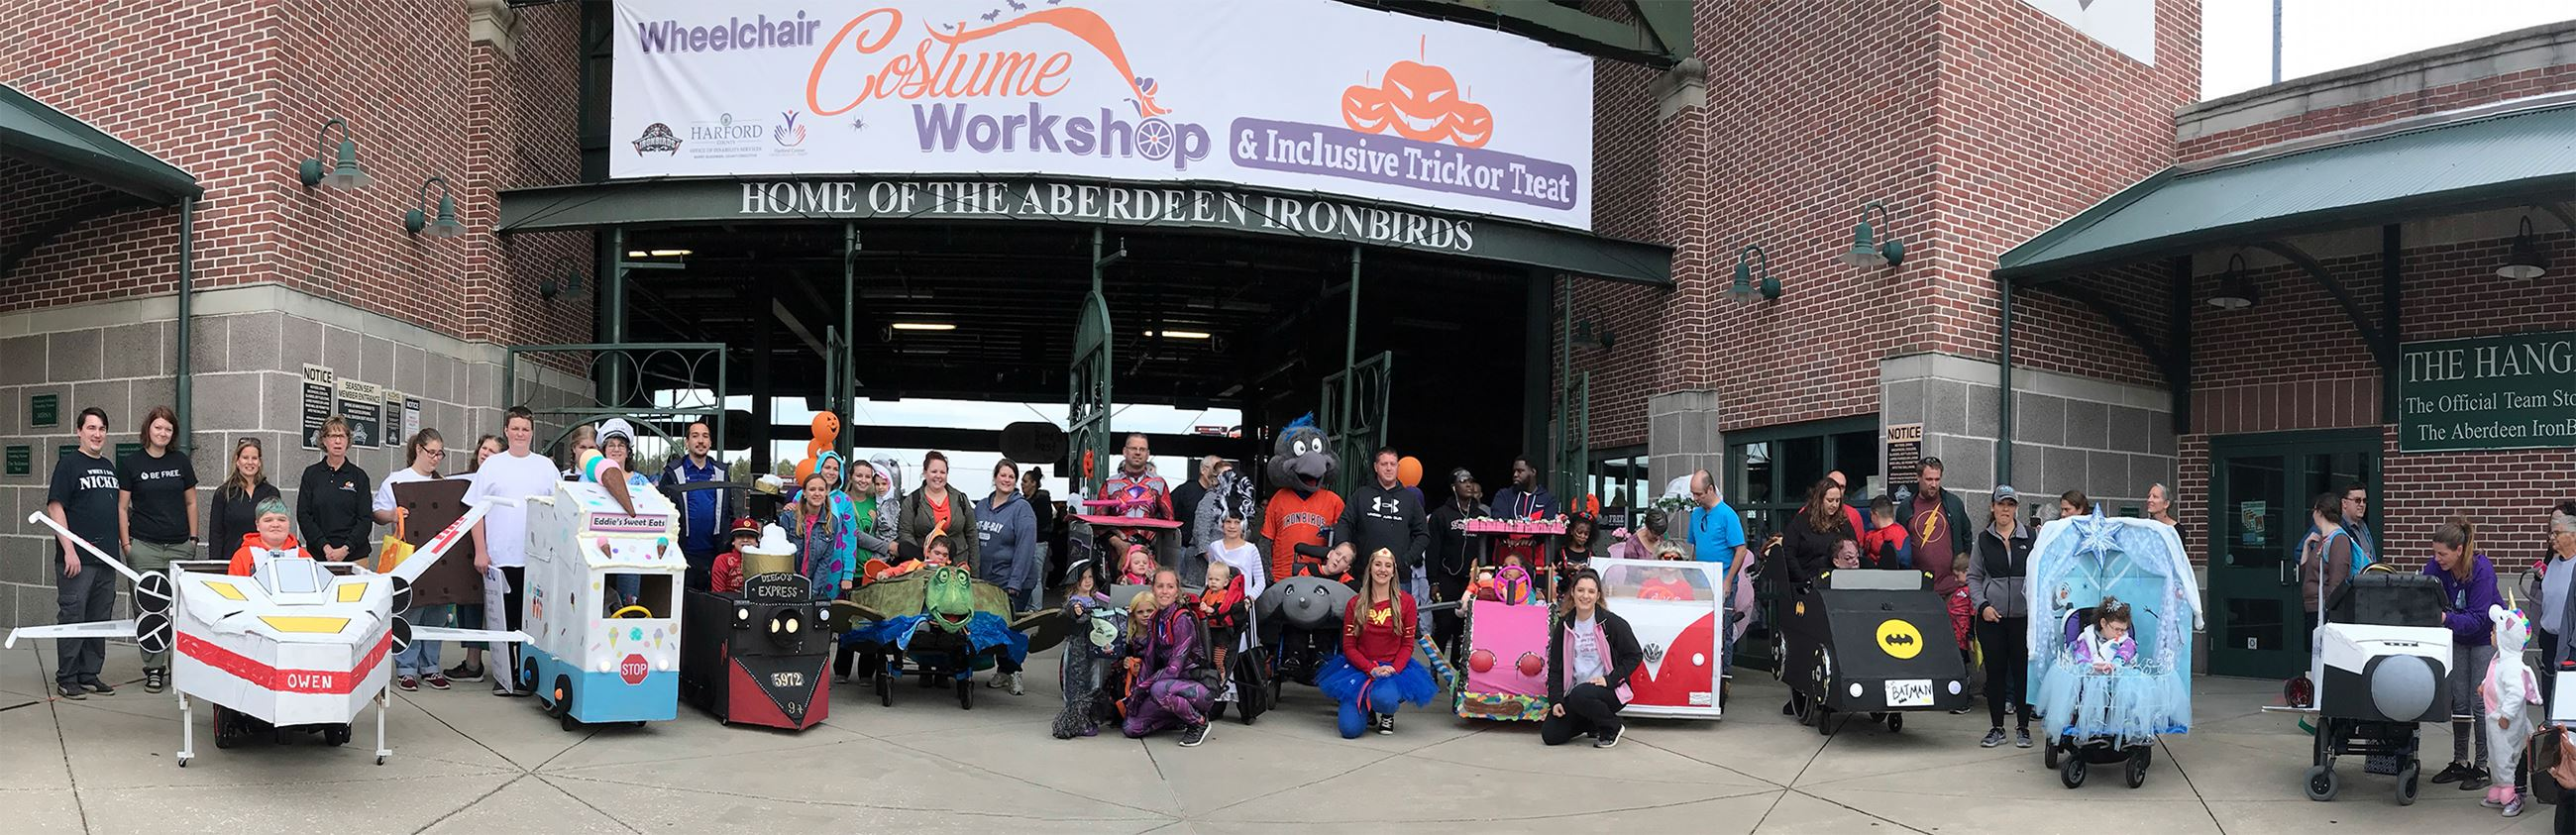 2019 Halloween Wheelchair Workshop participants photo